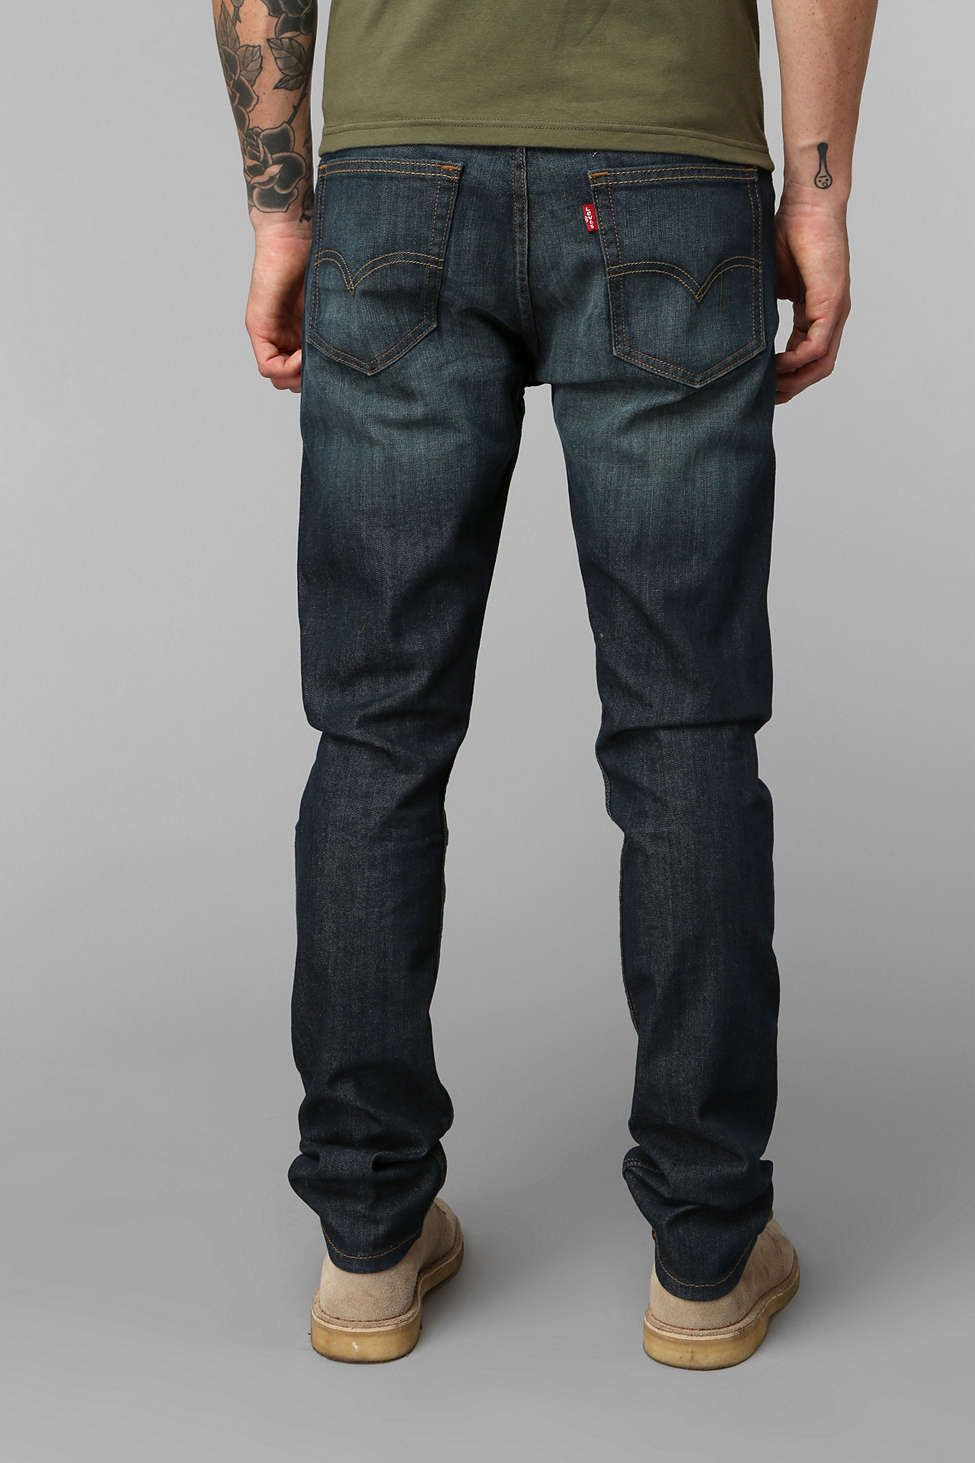 5855388f9d1 Levi's 510 Midnight Skinny Jean Levis 510, Jeans Pants, Urban Outfitters,  Skinny Jeans